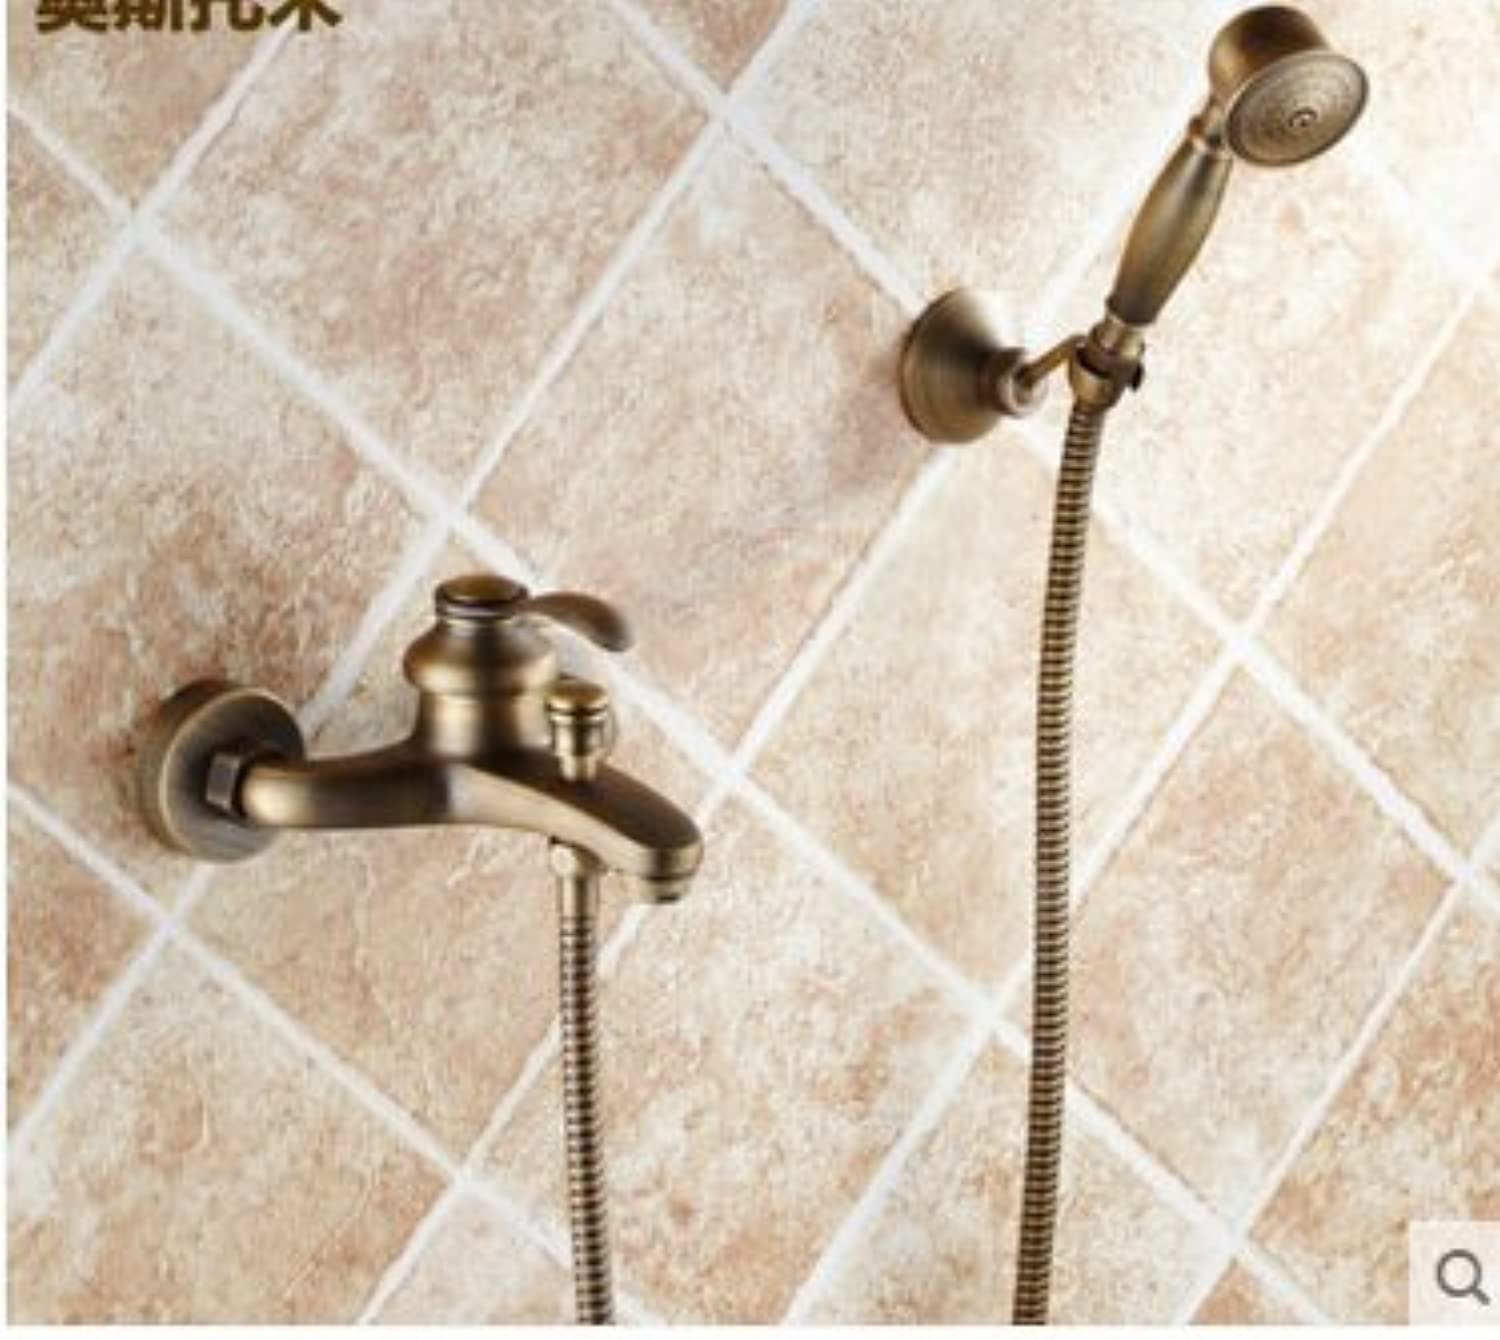 Electroplating Retro Faucet New Arrivals Wall mounted antique brass bronze brushed bathtub faucet with hand shower bathroom shower faucets torneiras,White